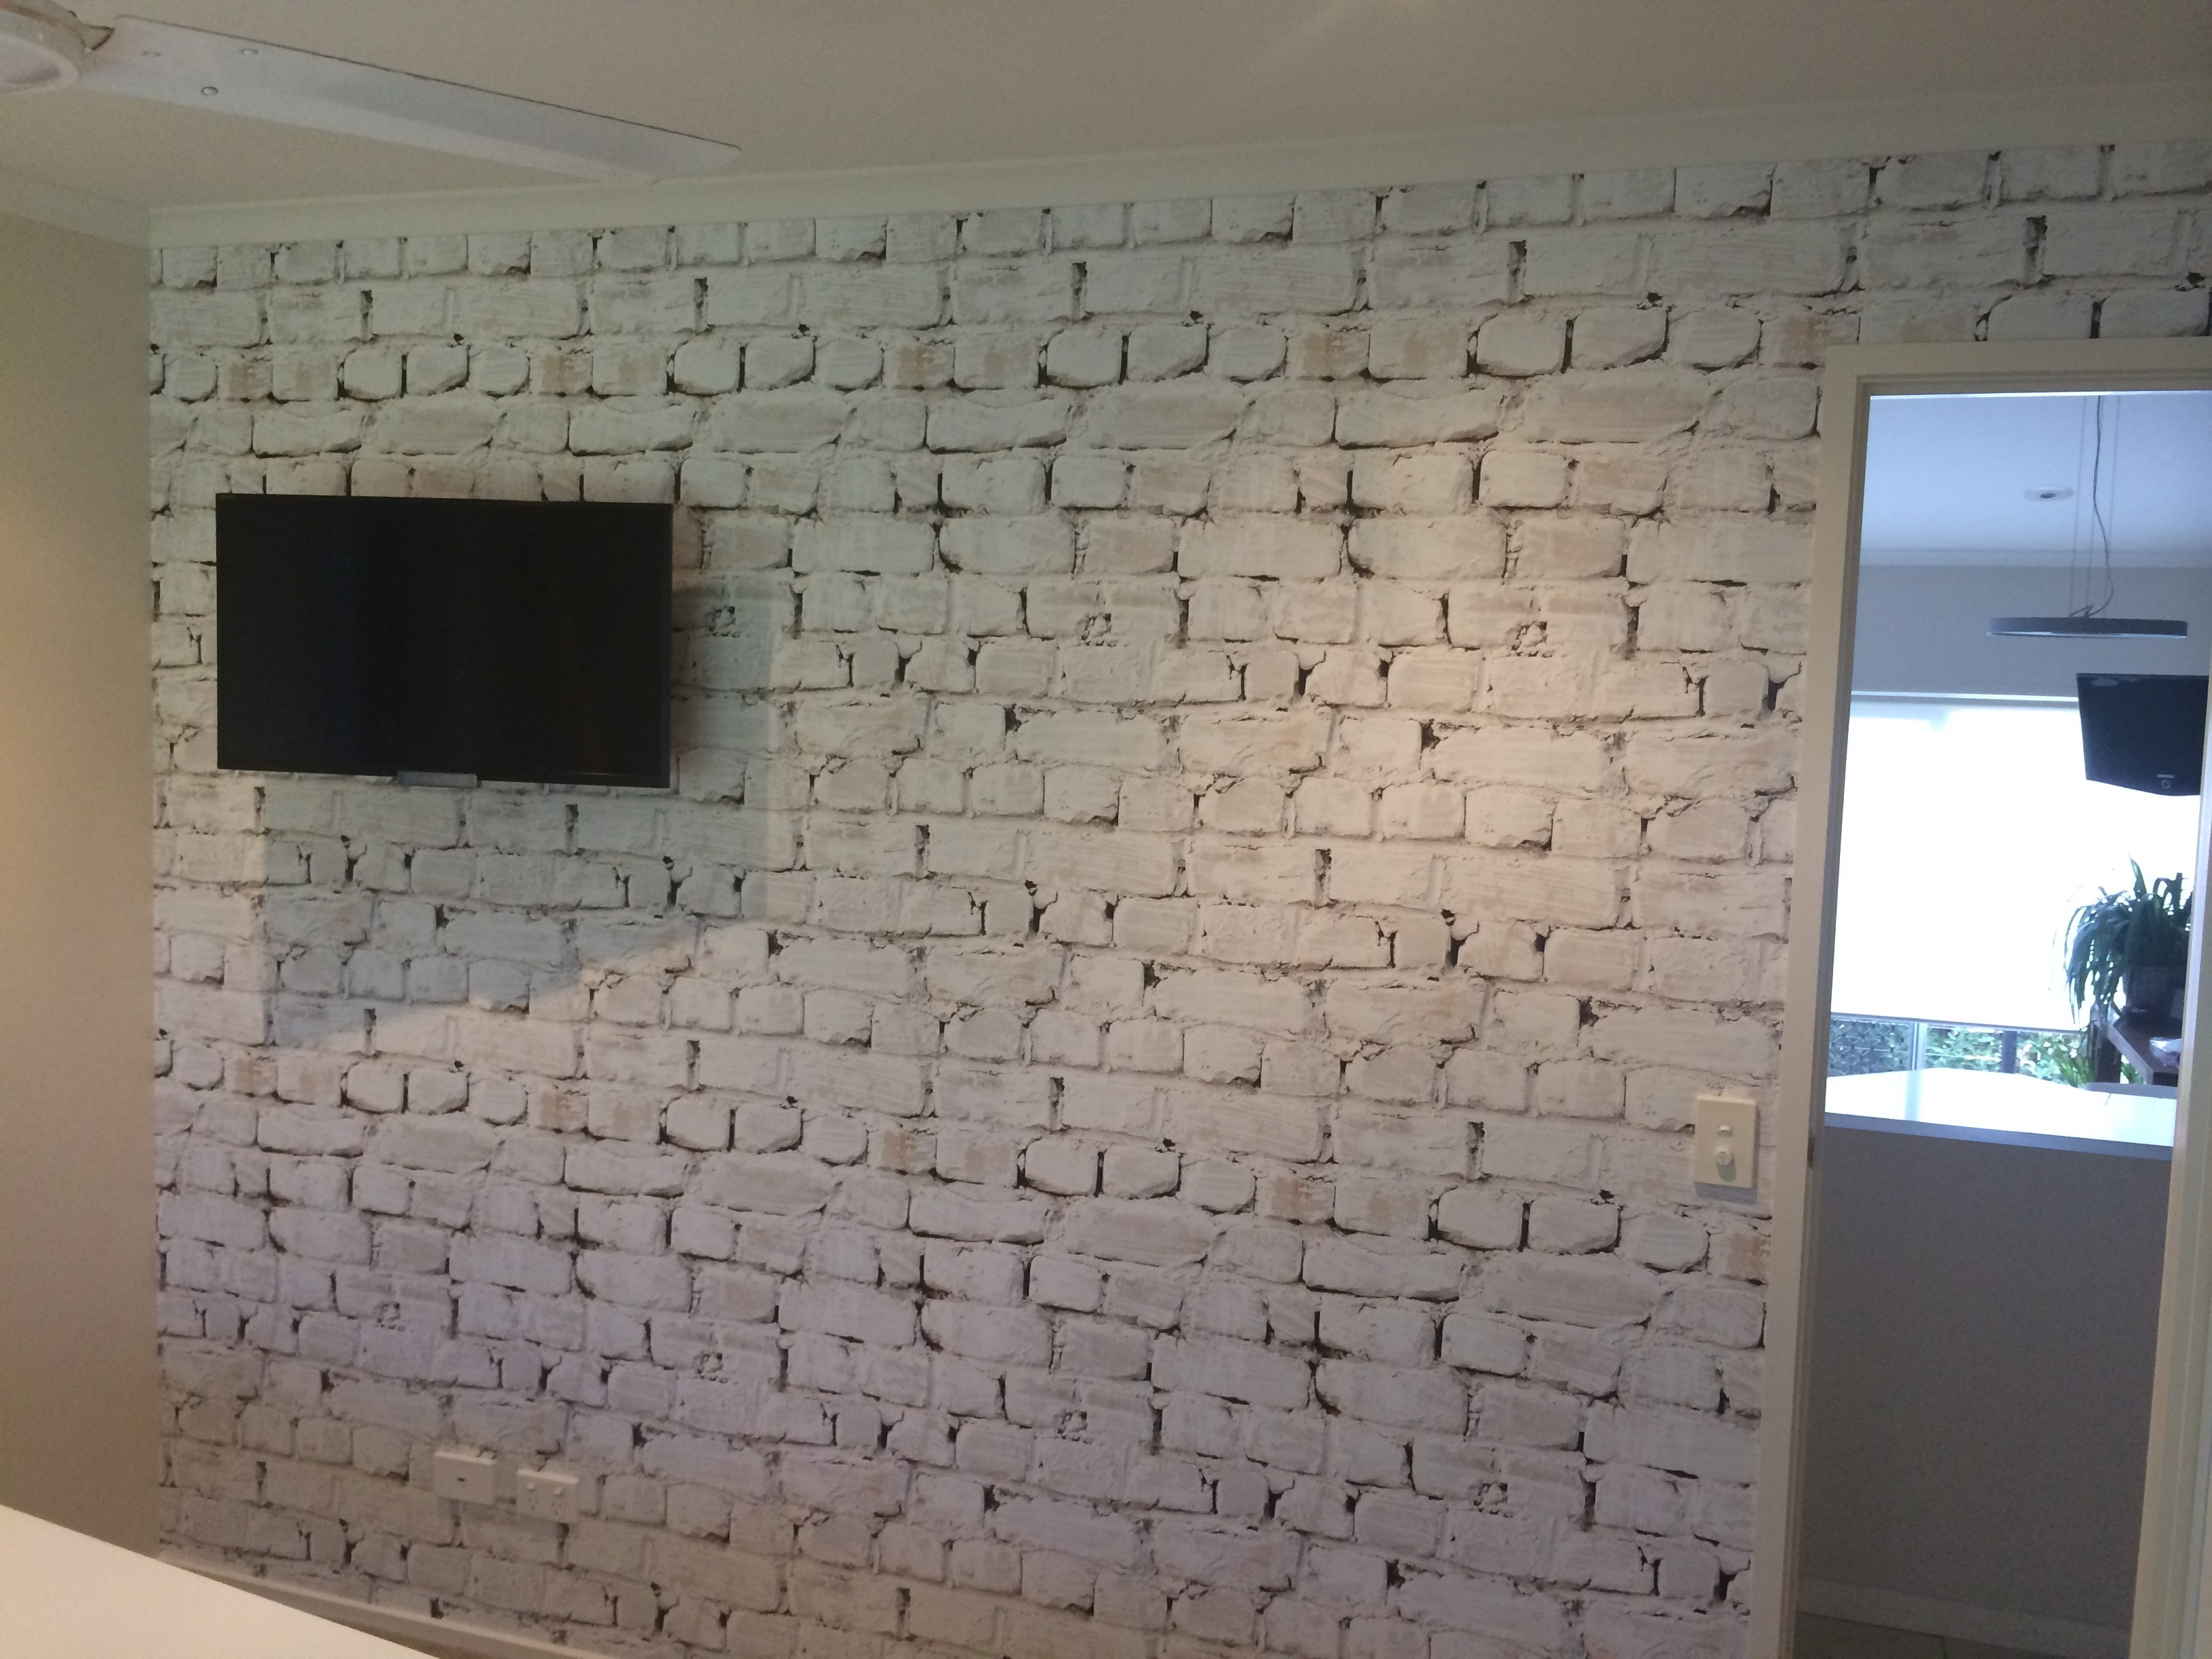 Brick Wallpaper Takes Wallcoverings To Another Level 3264x2448